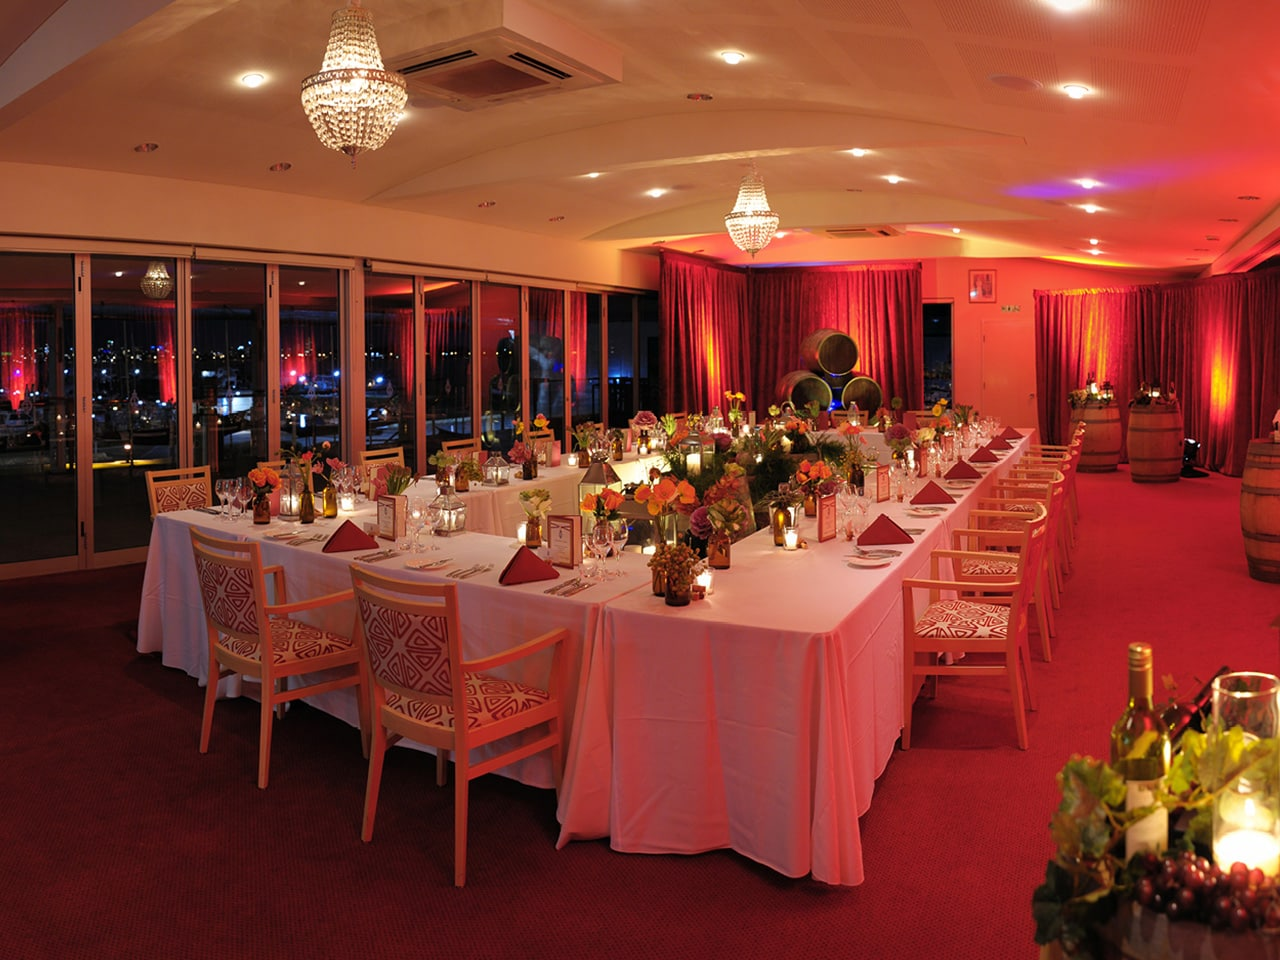 Tables And Chairs In A U-shape Style With Centerpieces, Candle Lit And Red Lightning Inside The Entire Function Room